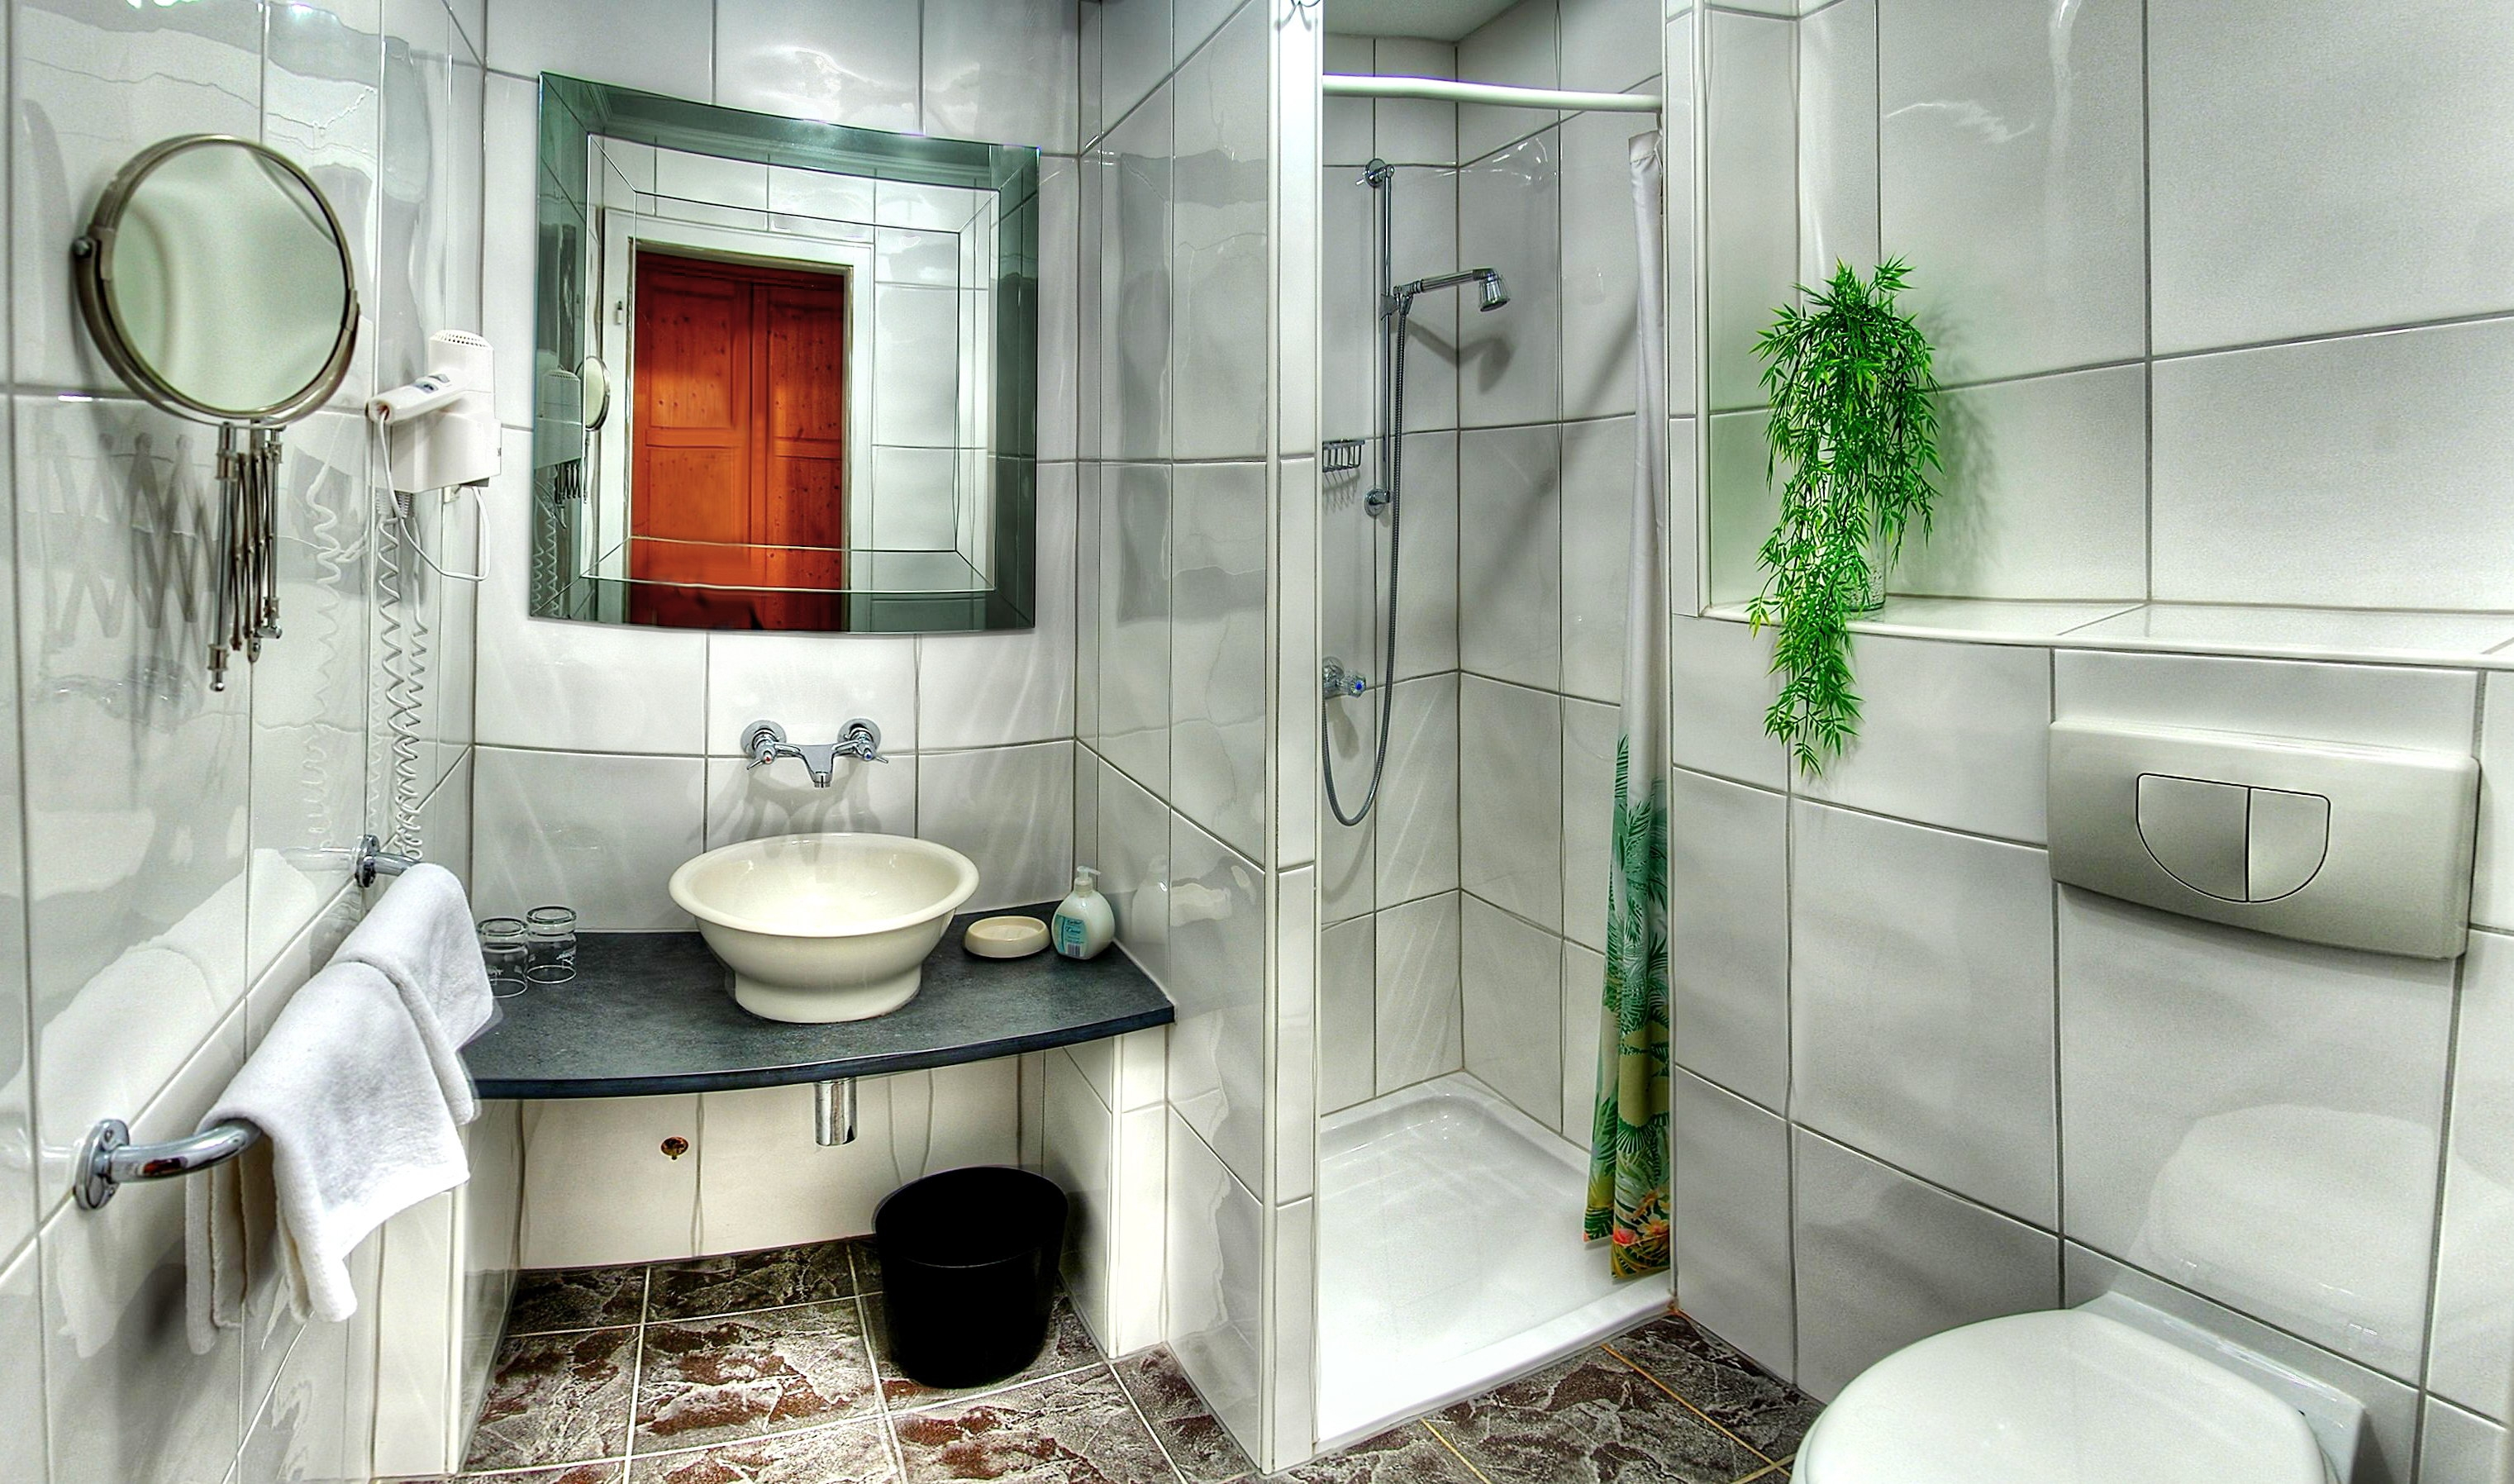 Tub Tile Shower Toilet Sink Mirror Hdr   Stock Photos Images 3042x1796